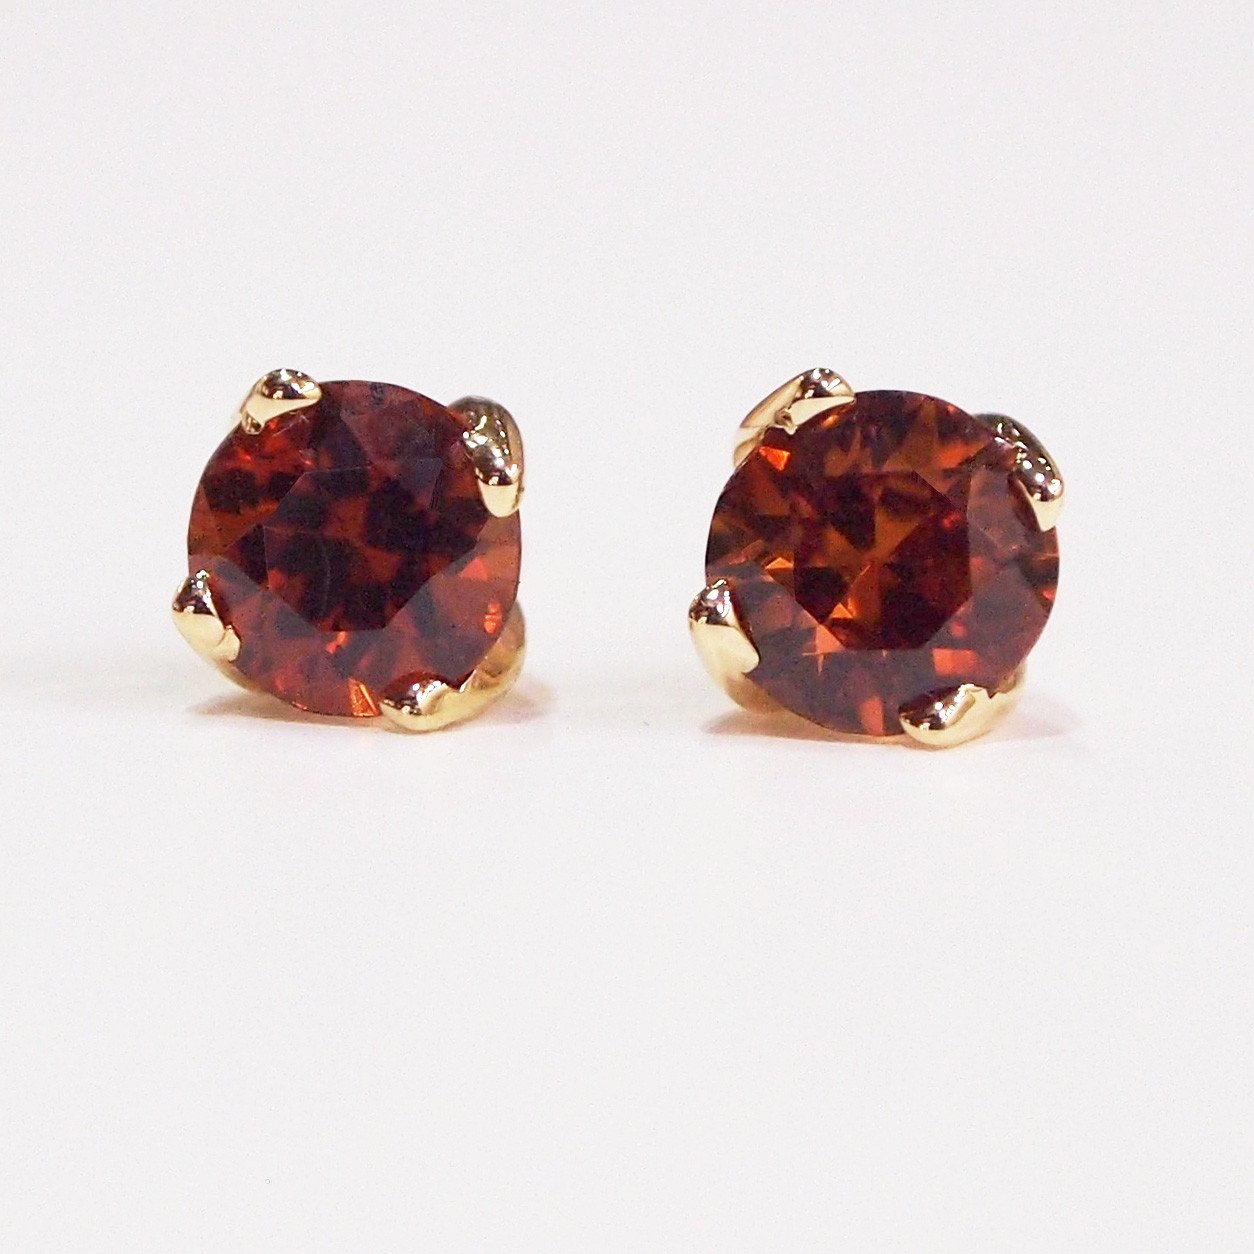 14K yellow gold 4-prong earring studs with two zircons weighing a total of 1.25 carats